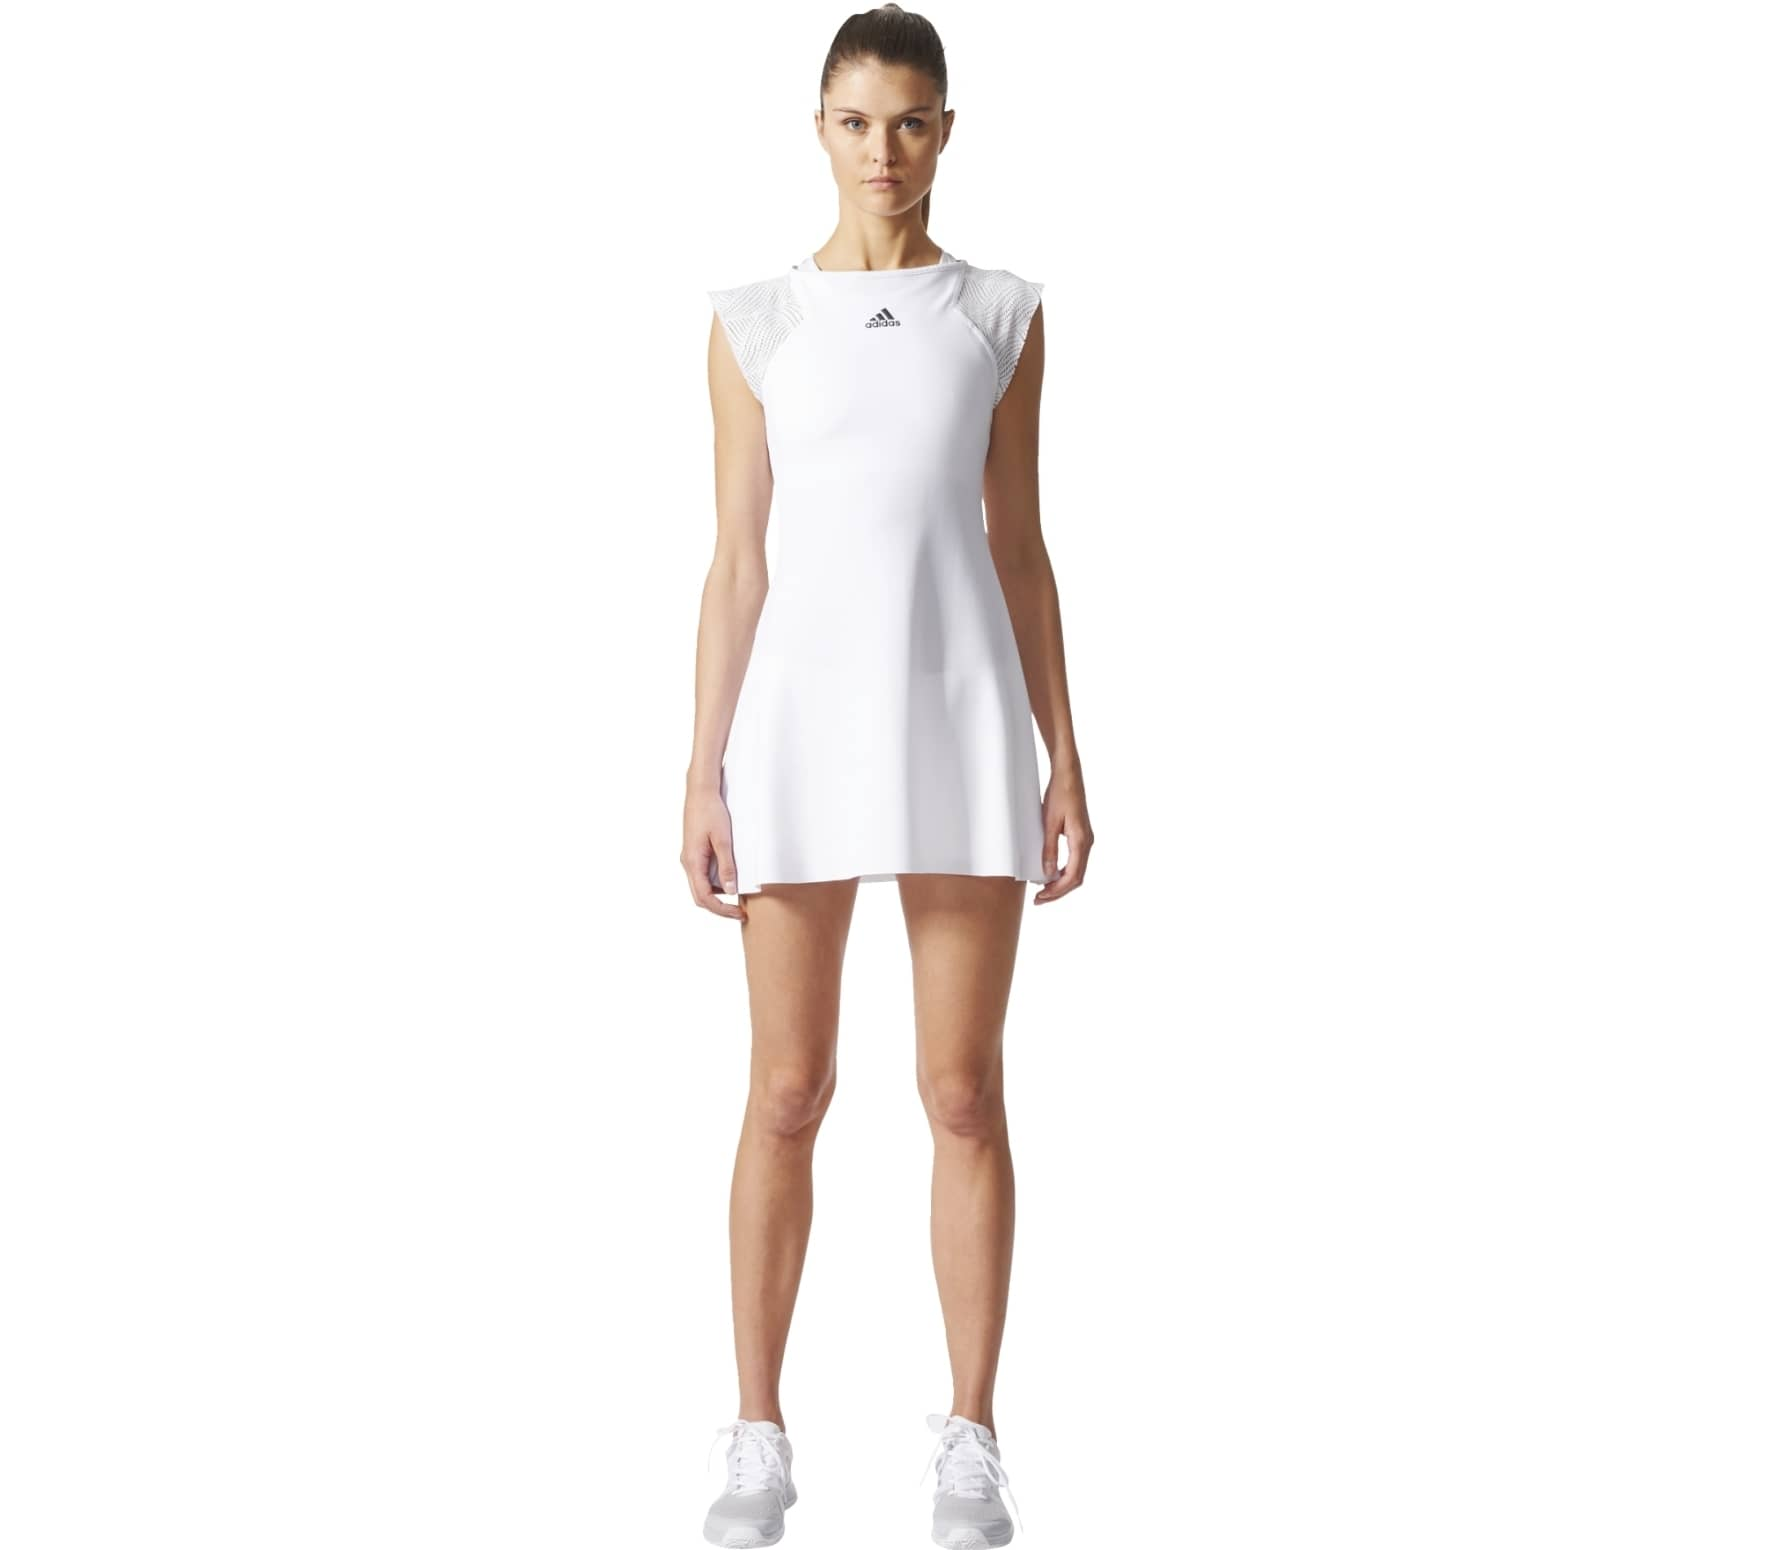 premium selection 4e7e2 089d2 adidas London line women's tennis dress Women